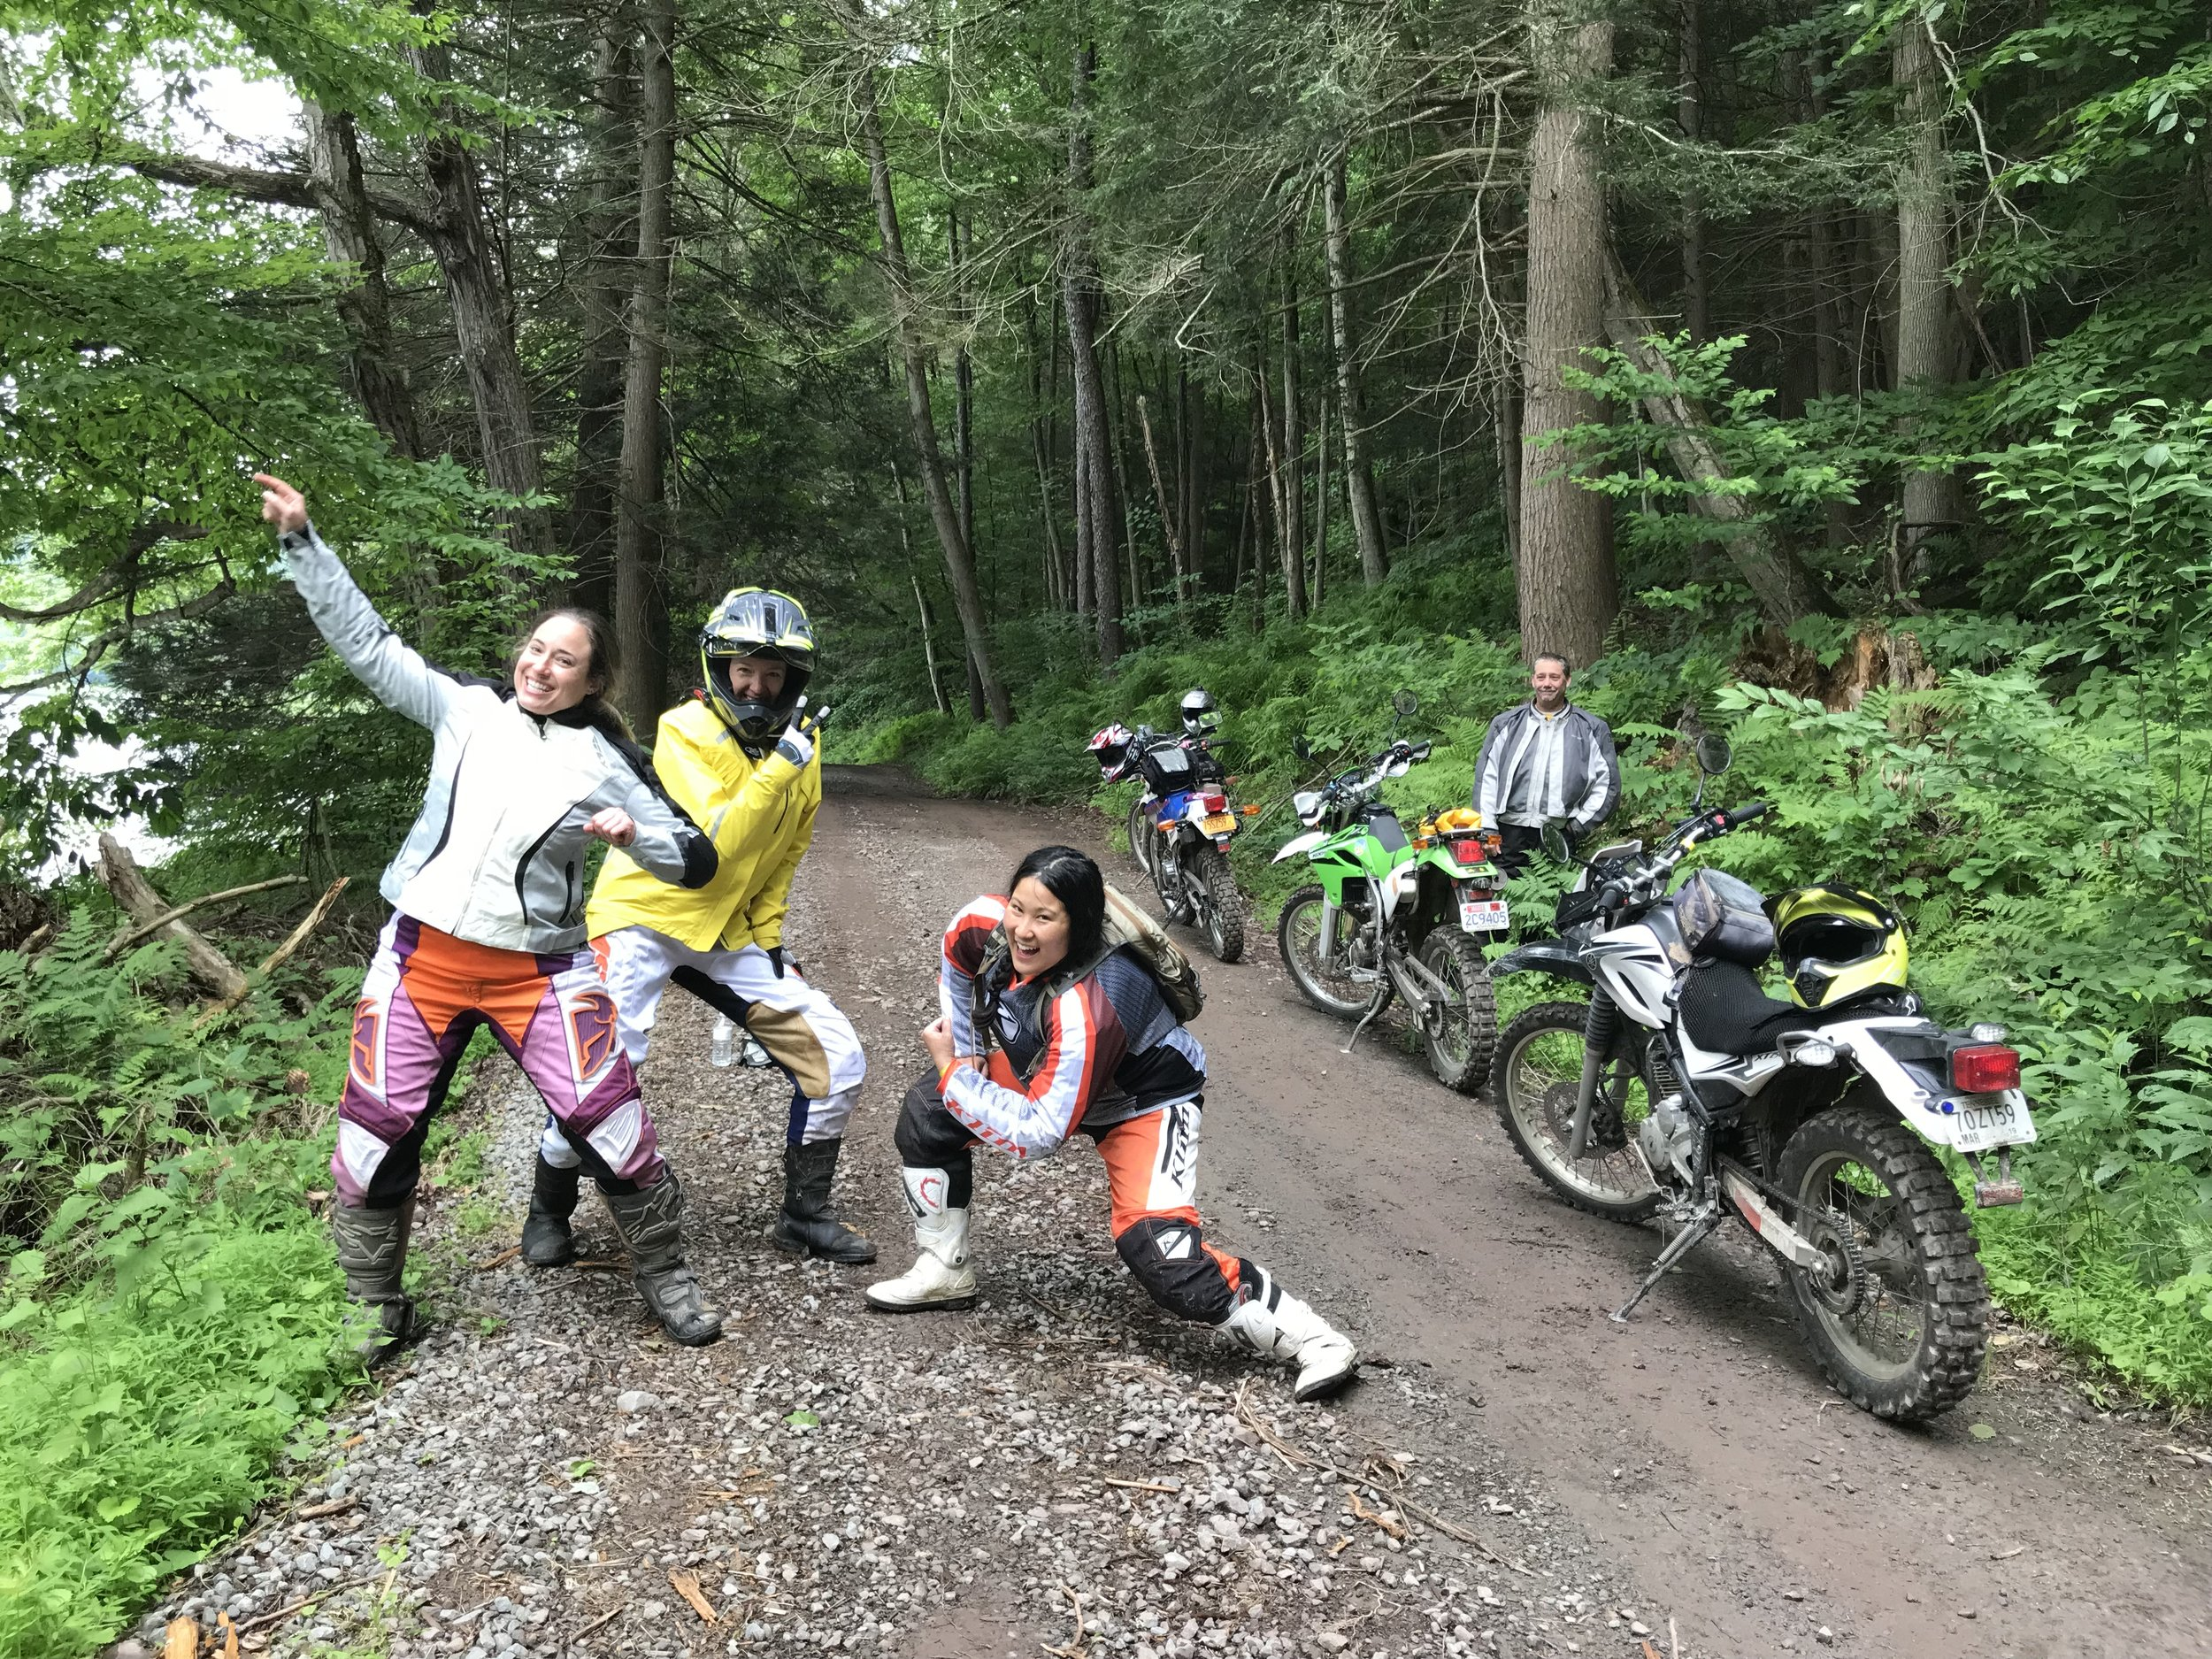 Photo courtesy Victoria Zandonella, Northeast Dualsport Riders.